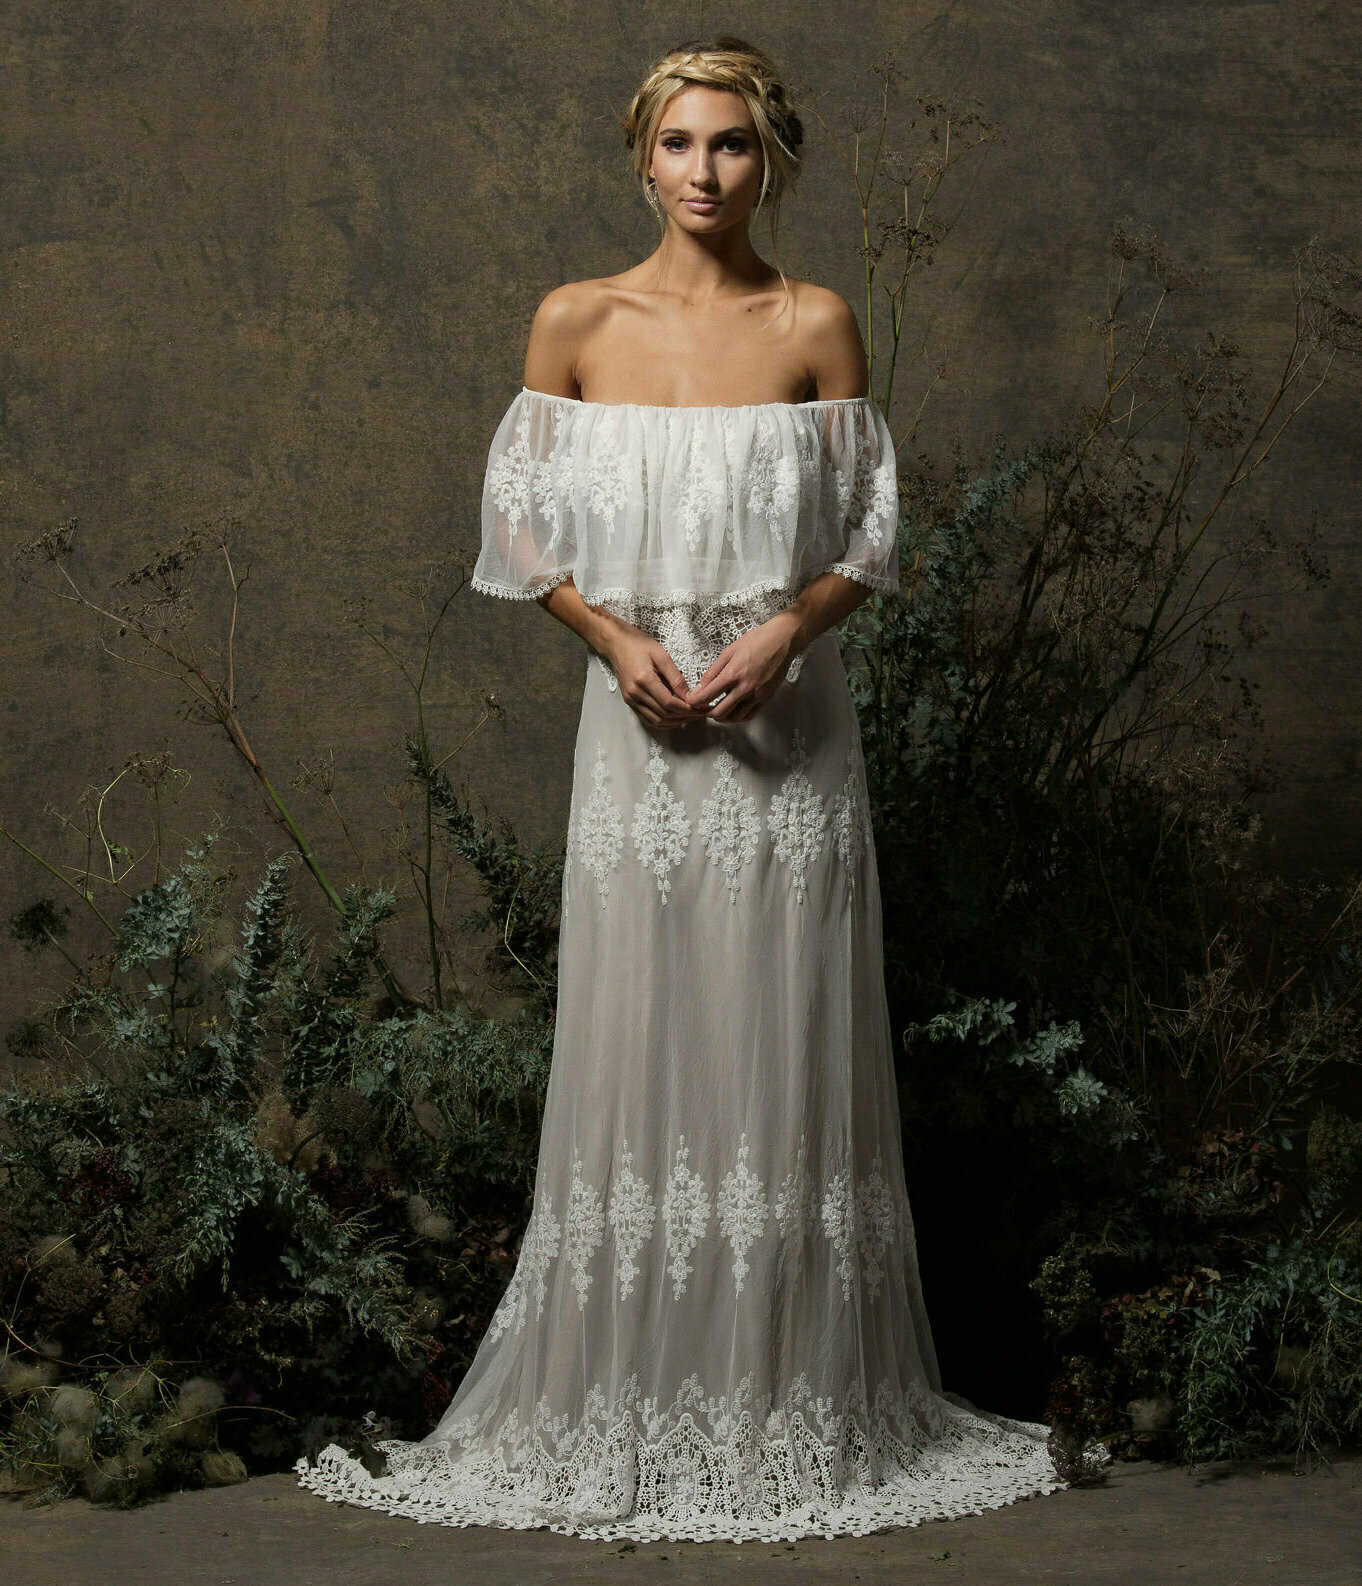 Non Traditional Wedding Dress Lace : Juniper bohemian lace wedding dress dreamers and lovers